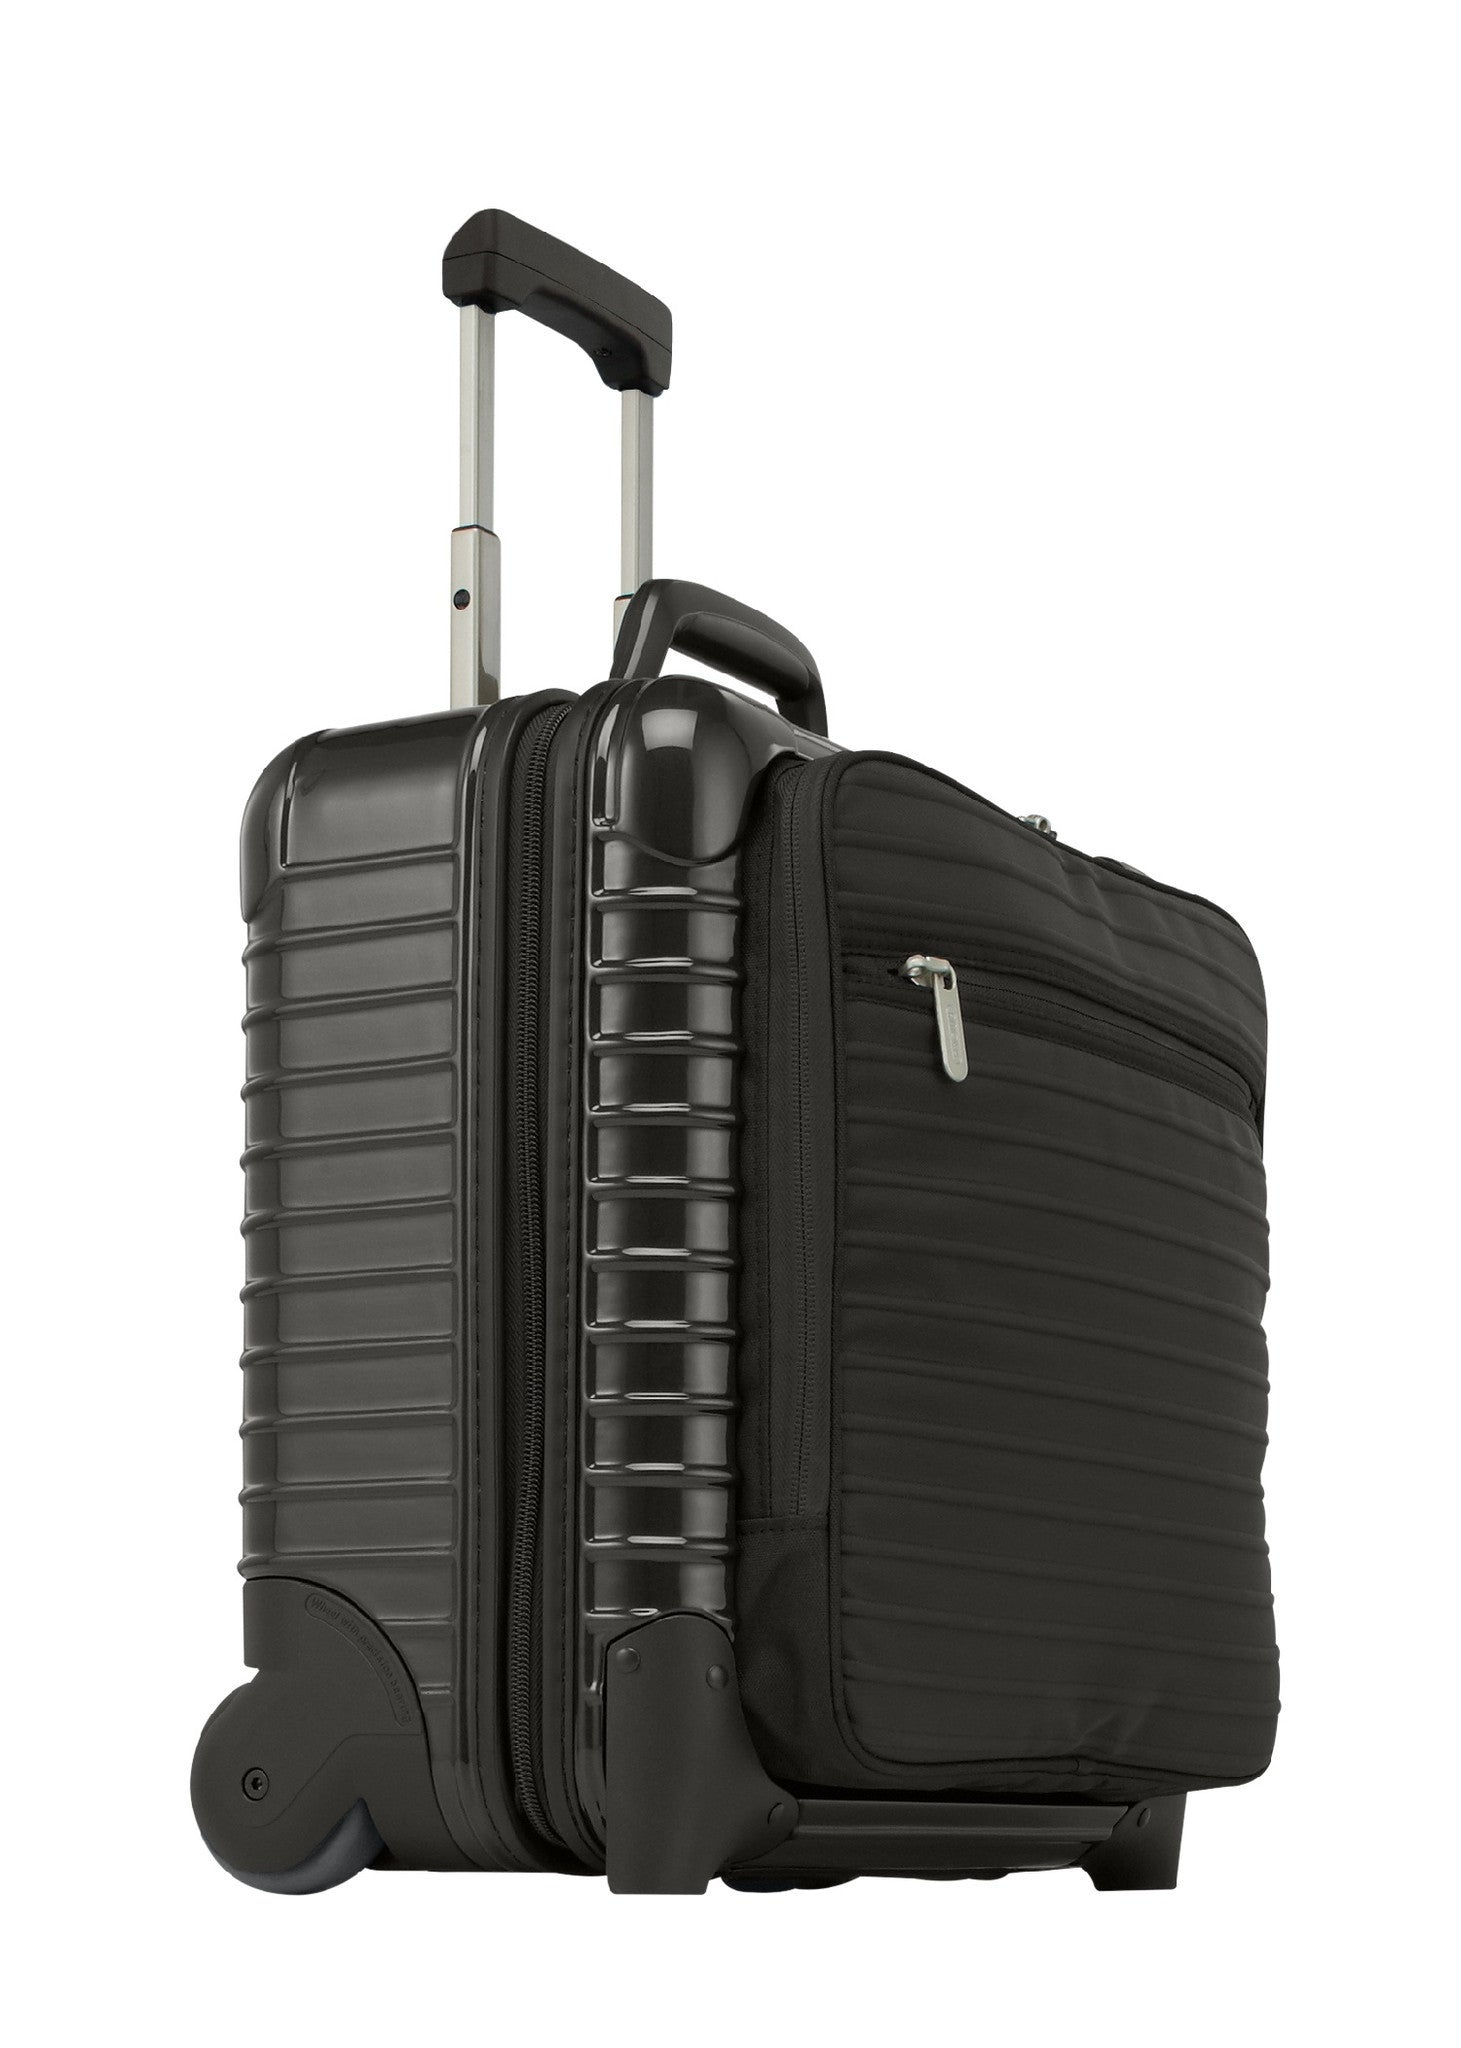 Rimowa Salsa Deluxe Hybrid Business Trolley (SM) - Granite Brown